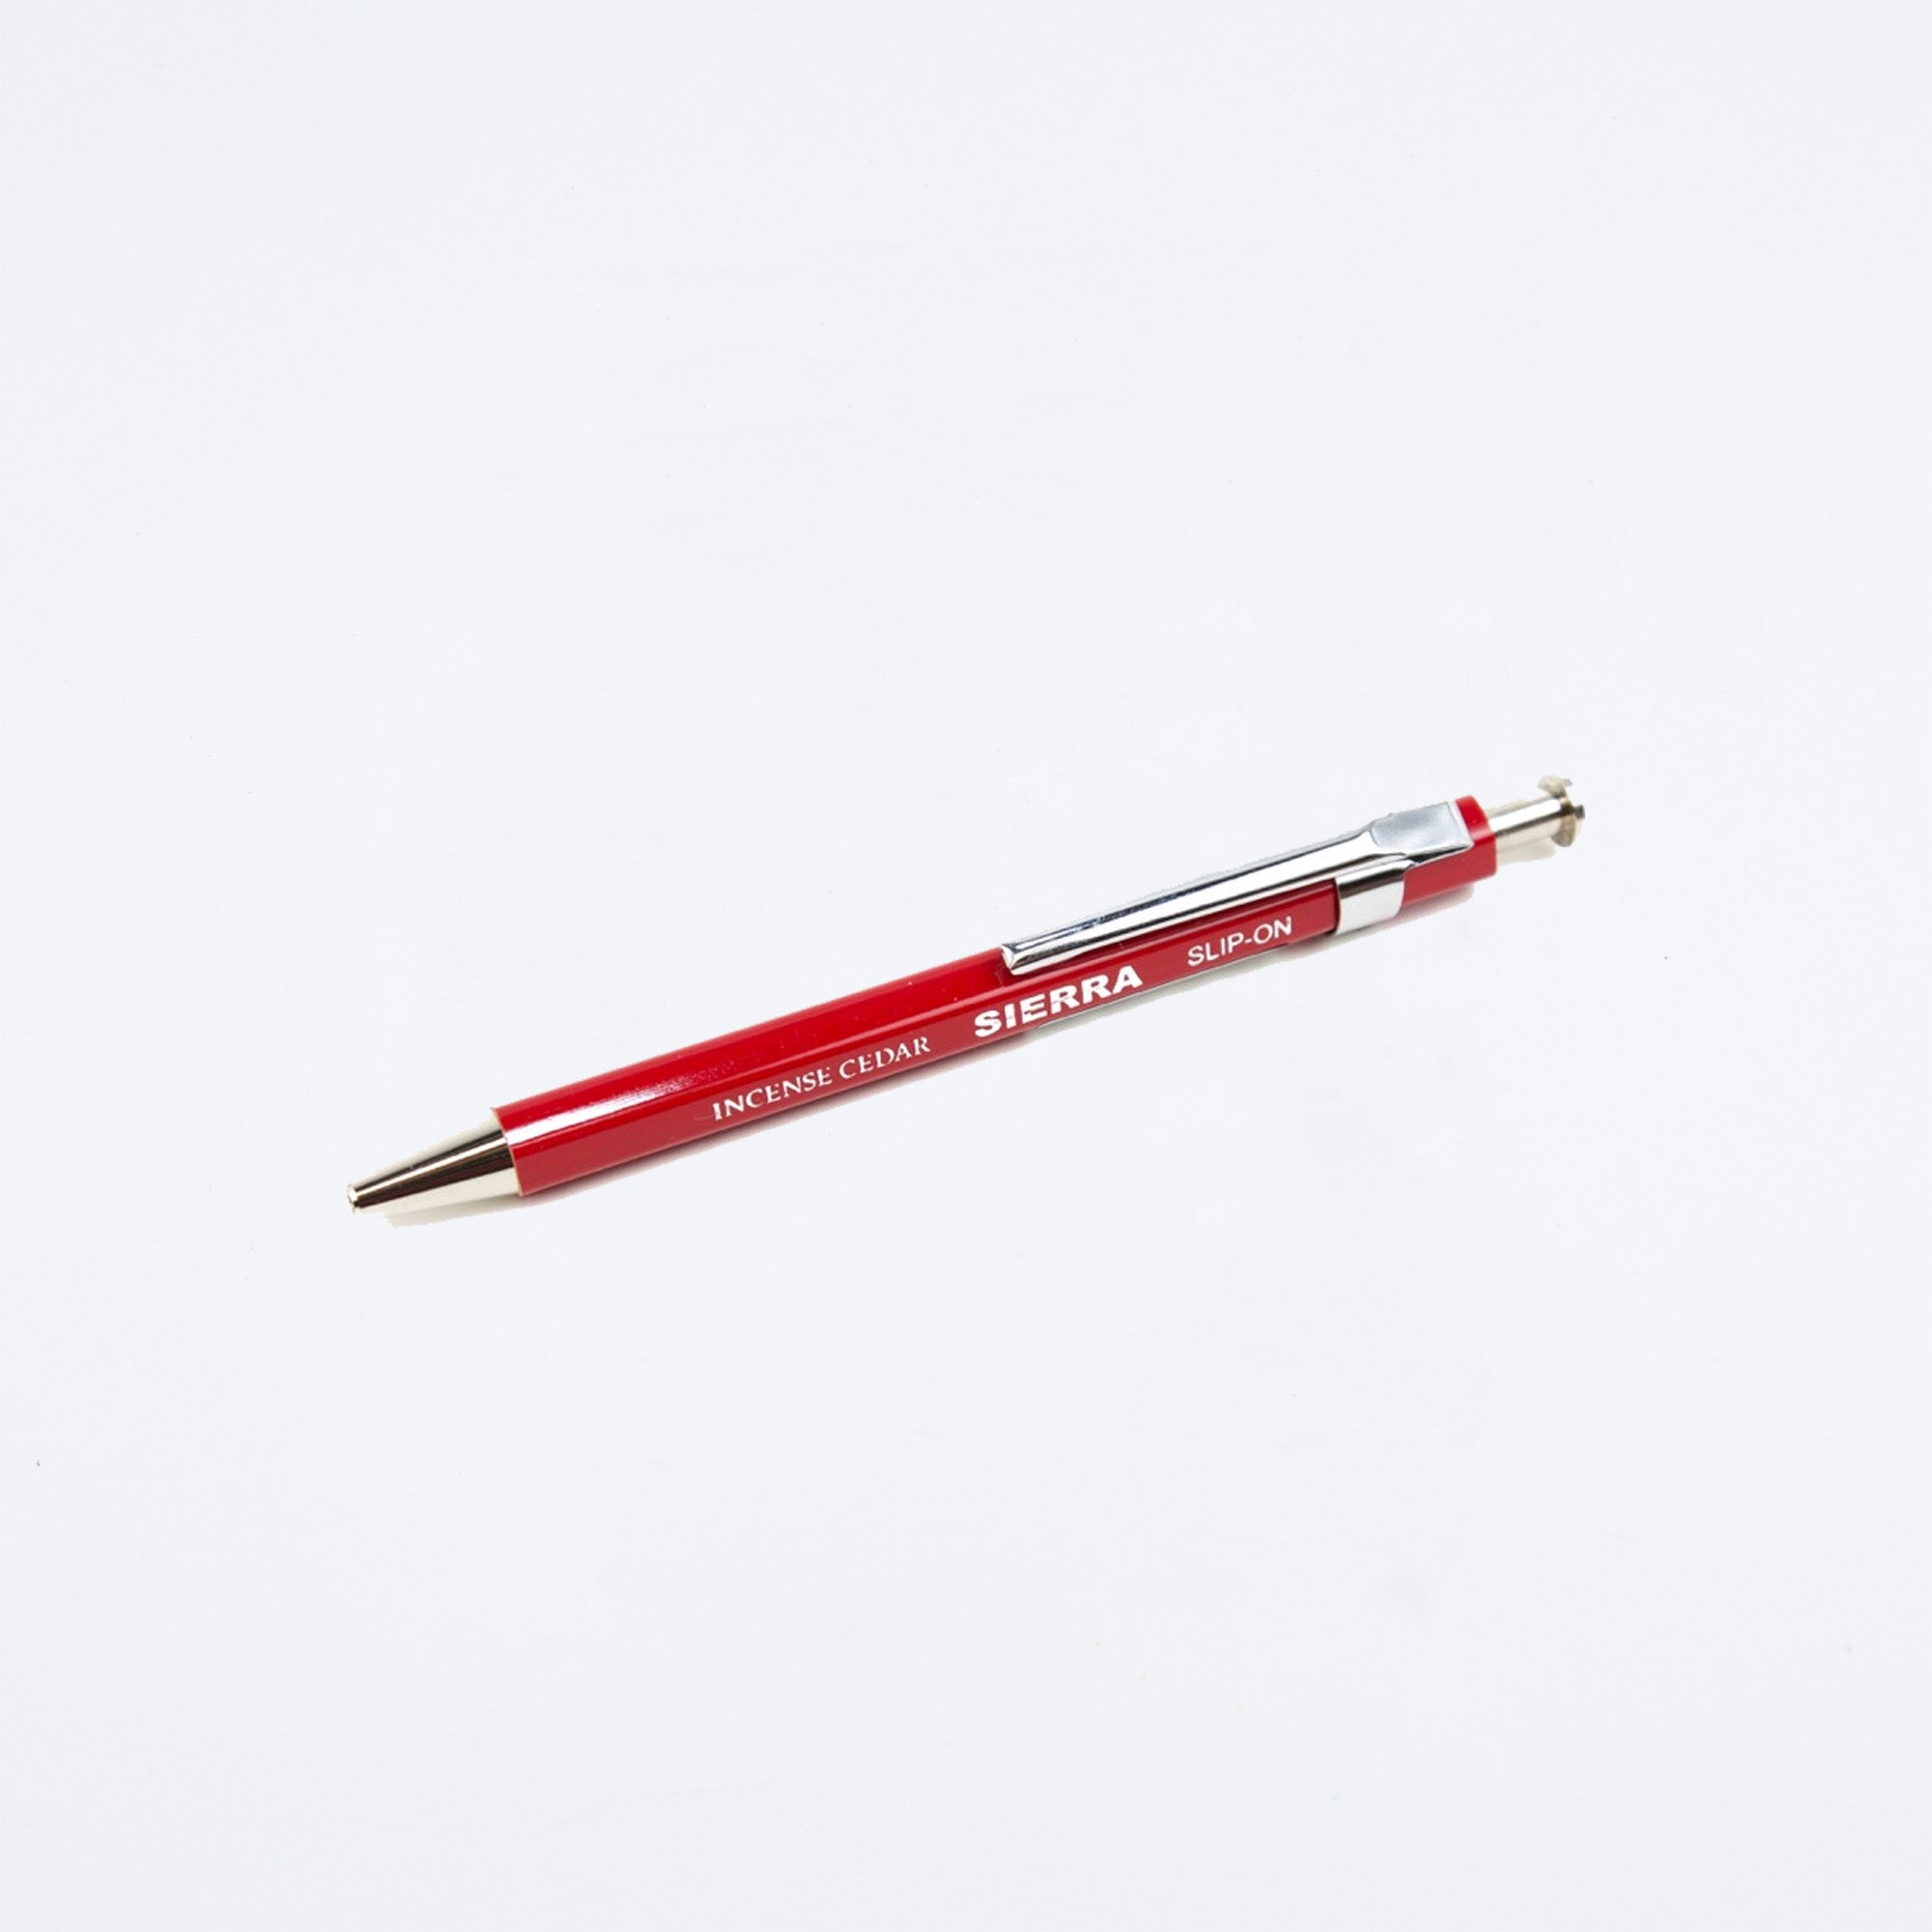 Sierra Needle-Point Pocket Pen